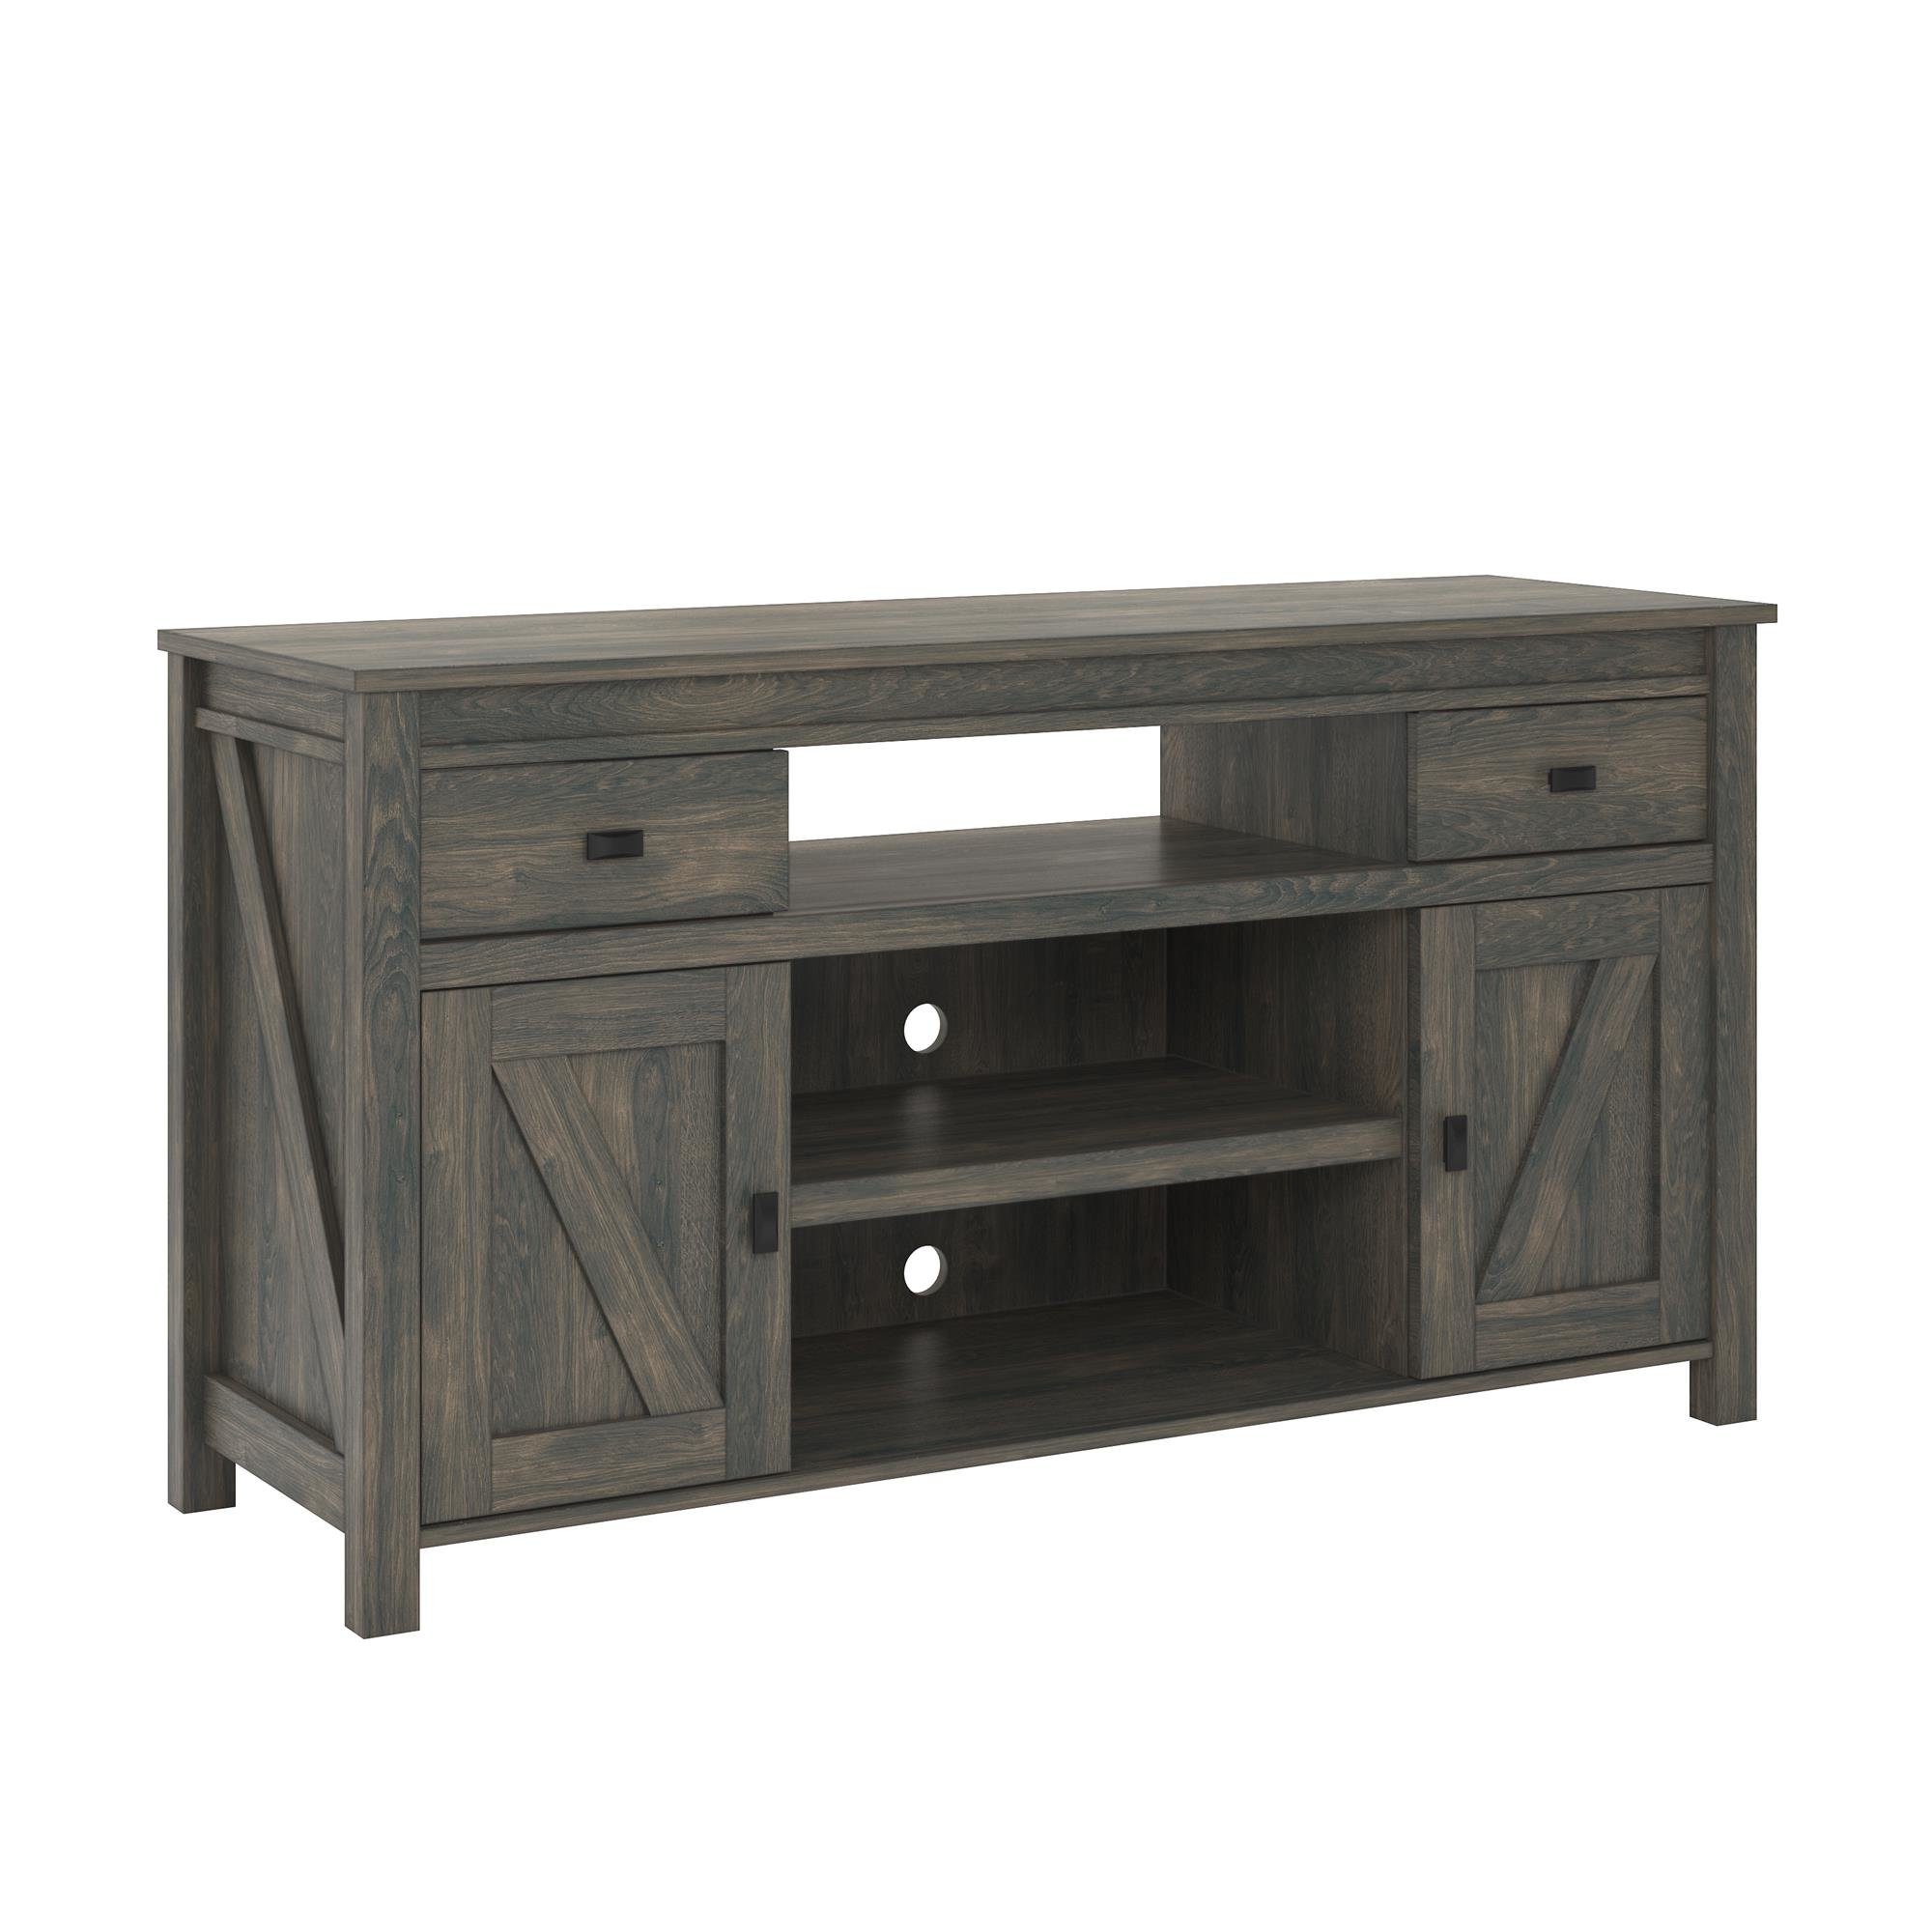 60 69 Inch Tv Stands (View 17 of 20)